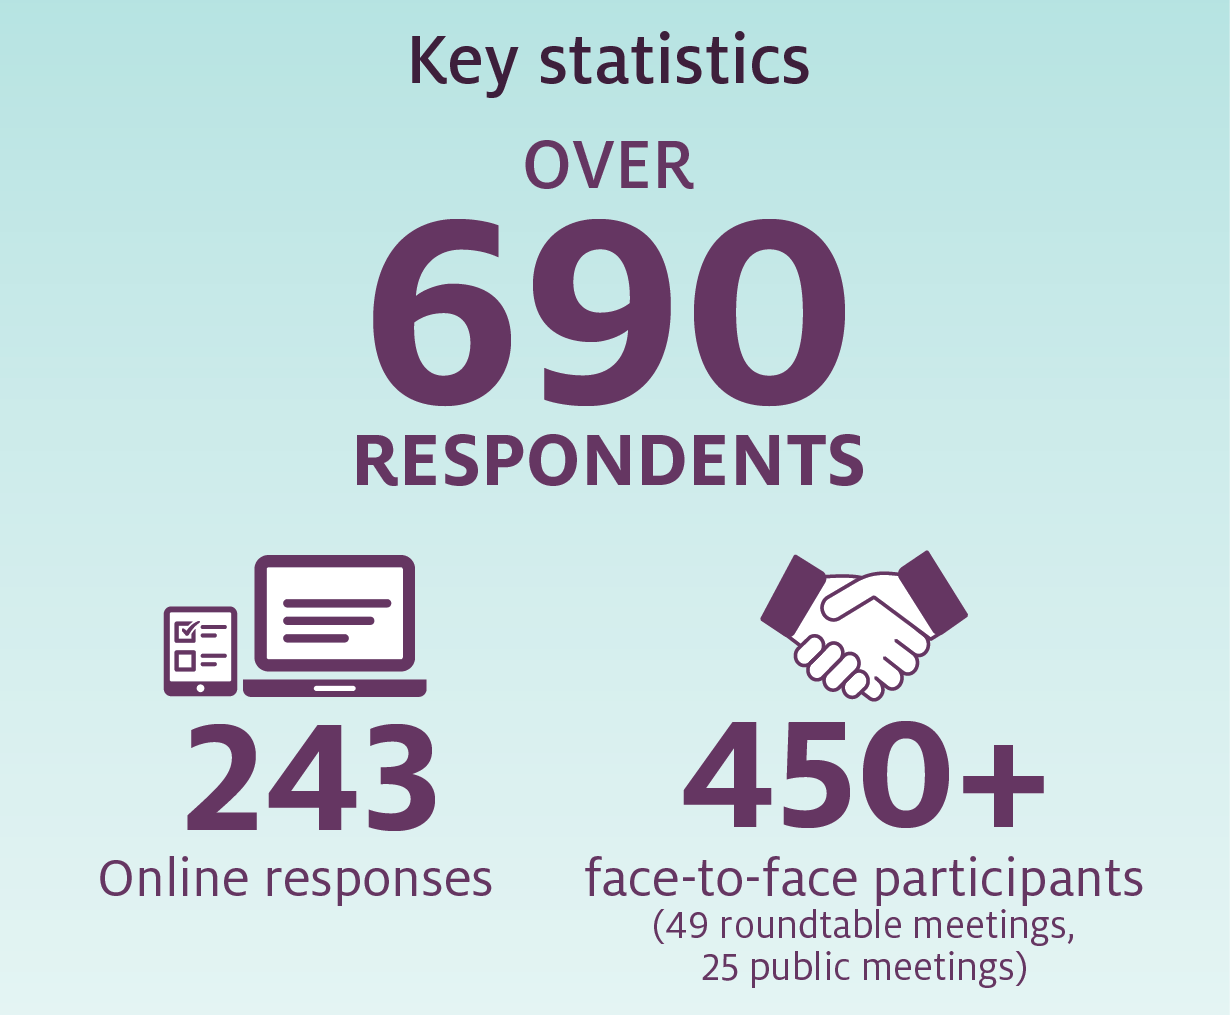 We had over 690 respondents, 122 surveys were completed, 121 submissions were uploaded and over 450 people attended face to face meetings